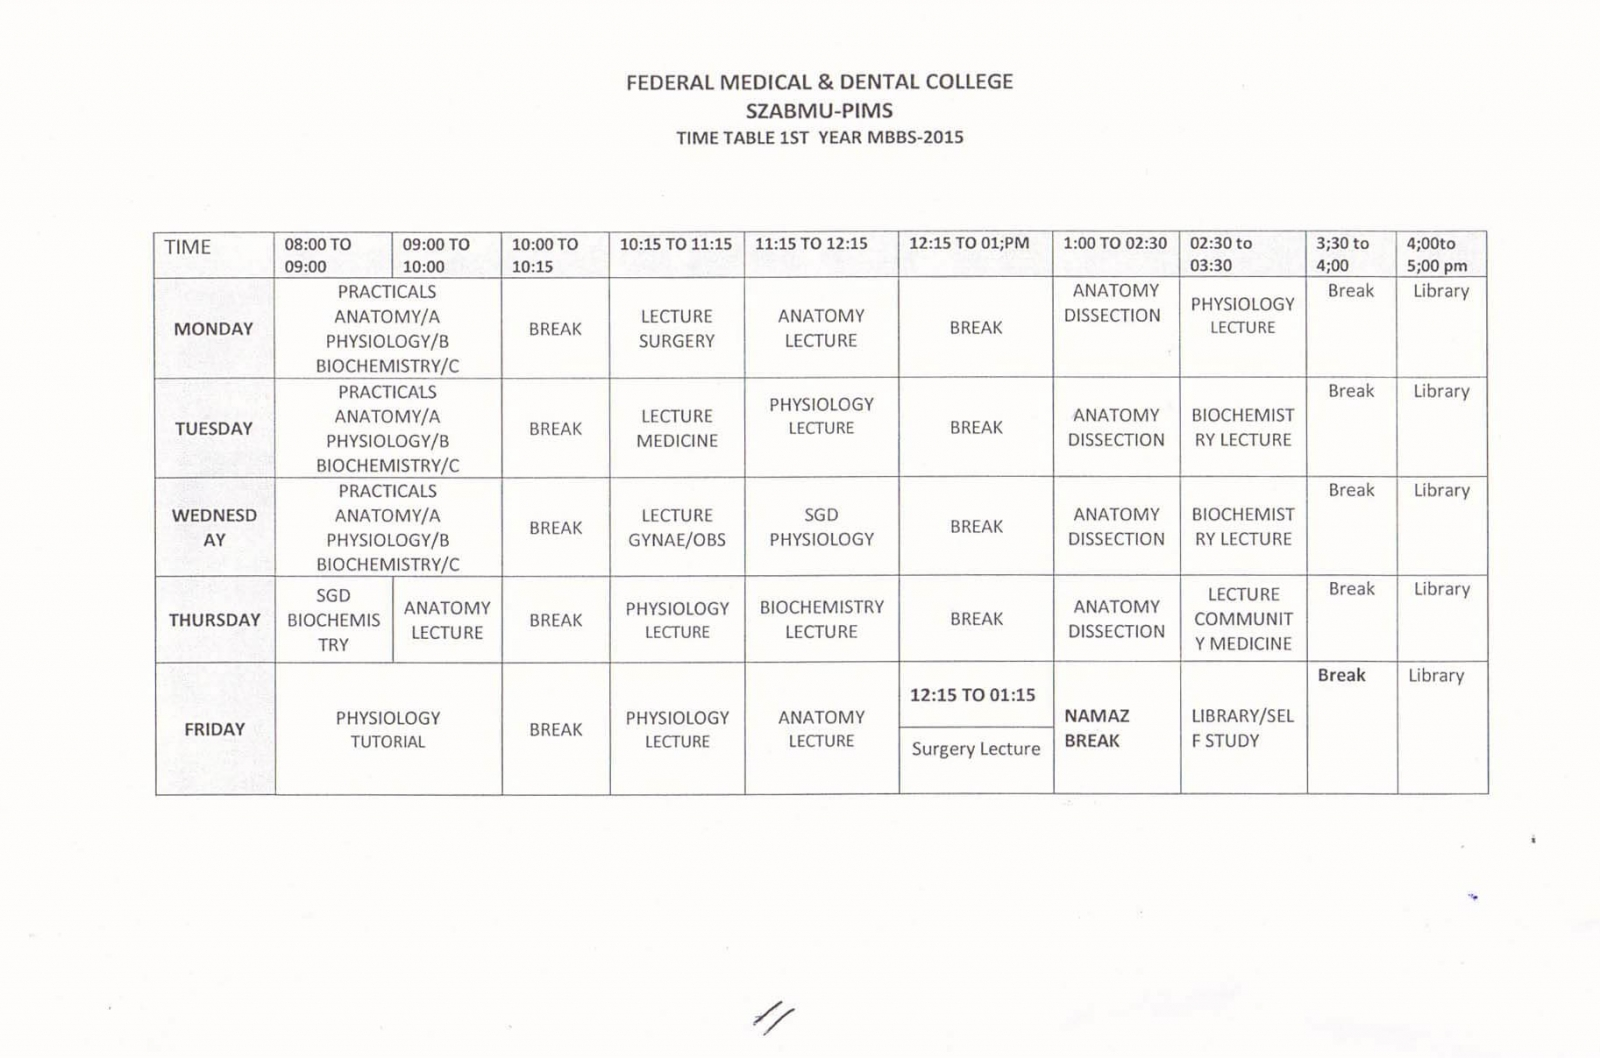 FM&DC Time Table 1st Year M B B S 2015 | Shaheed Zulfiqar